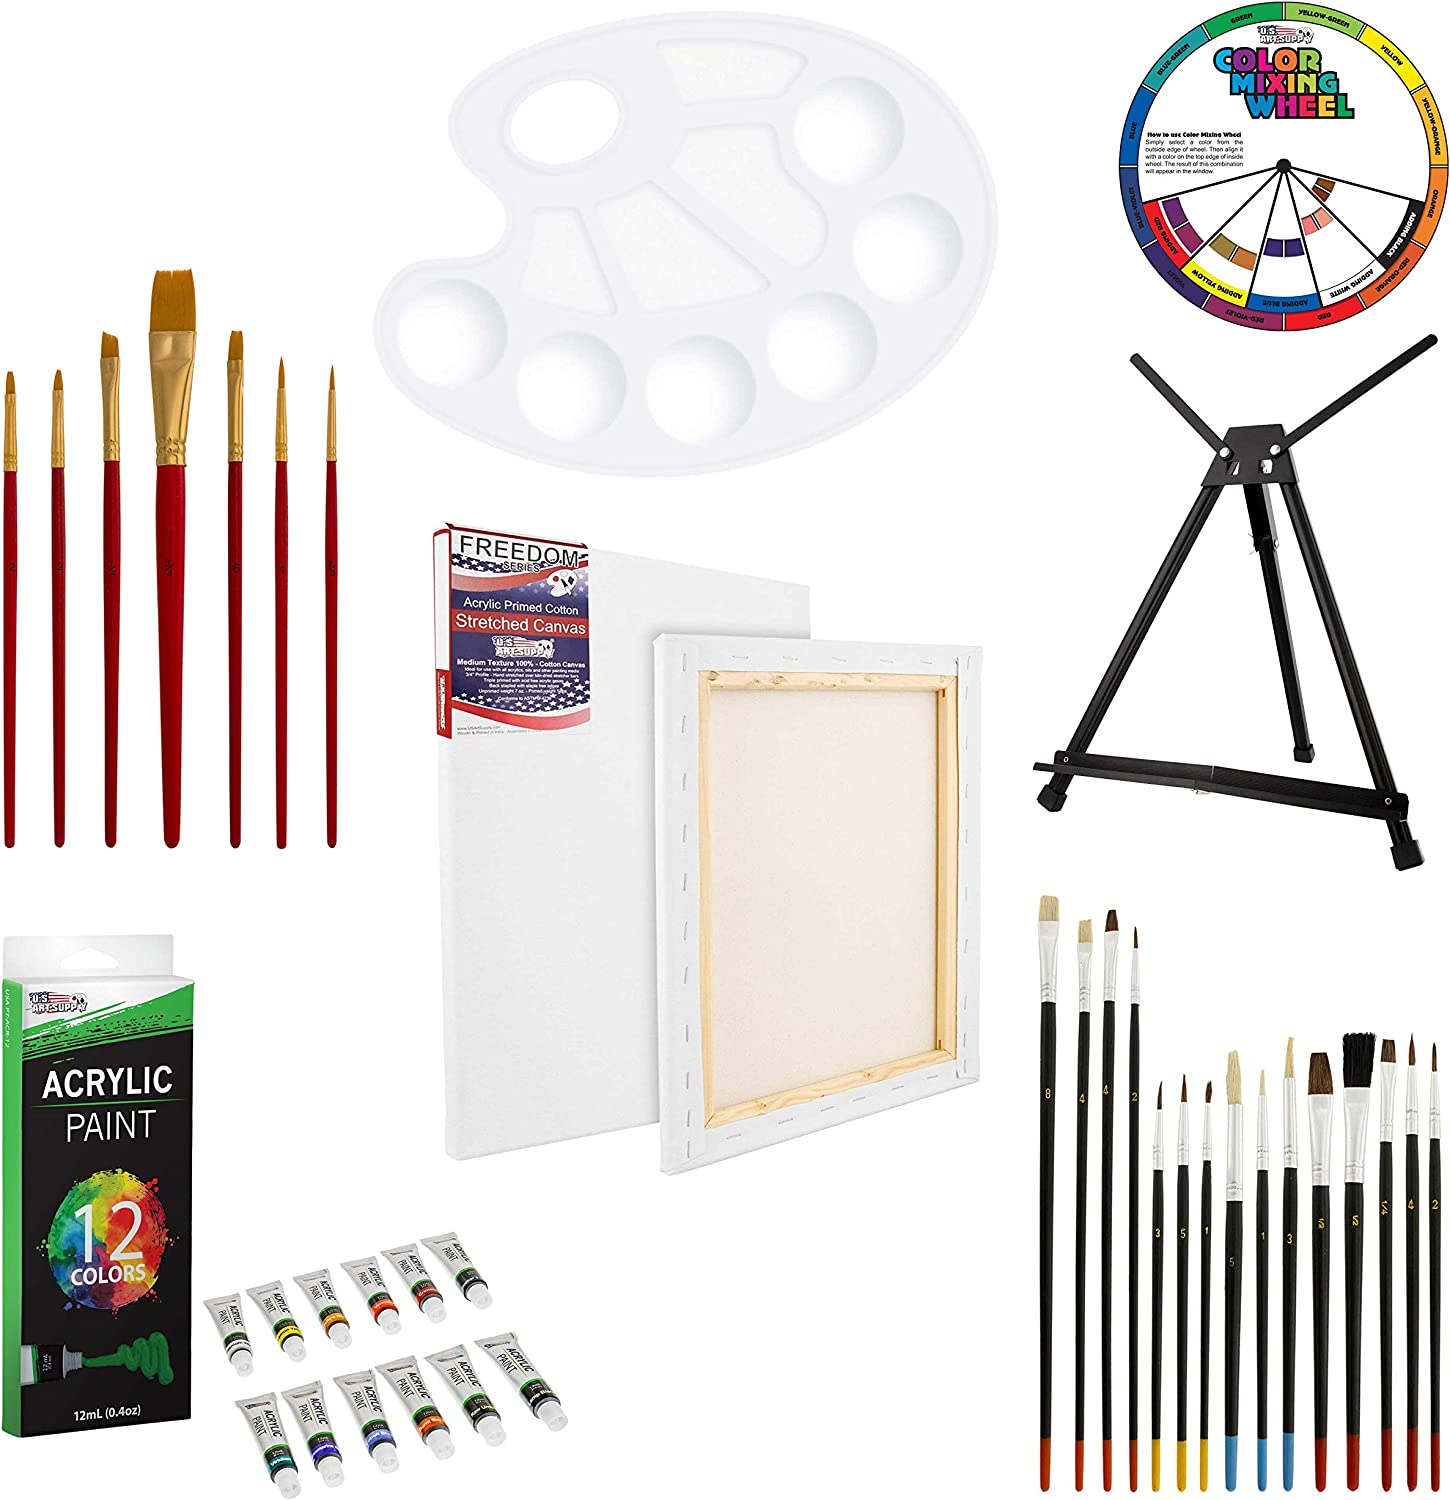 U.S Aluminum Table Easel Paint Brushes /& Plastic Palette Stretched Canvas 12 Acrylic Colors Art Supply 39-Piece Acrylic Artist Painting Set